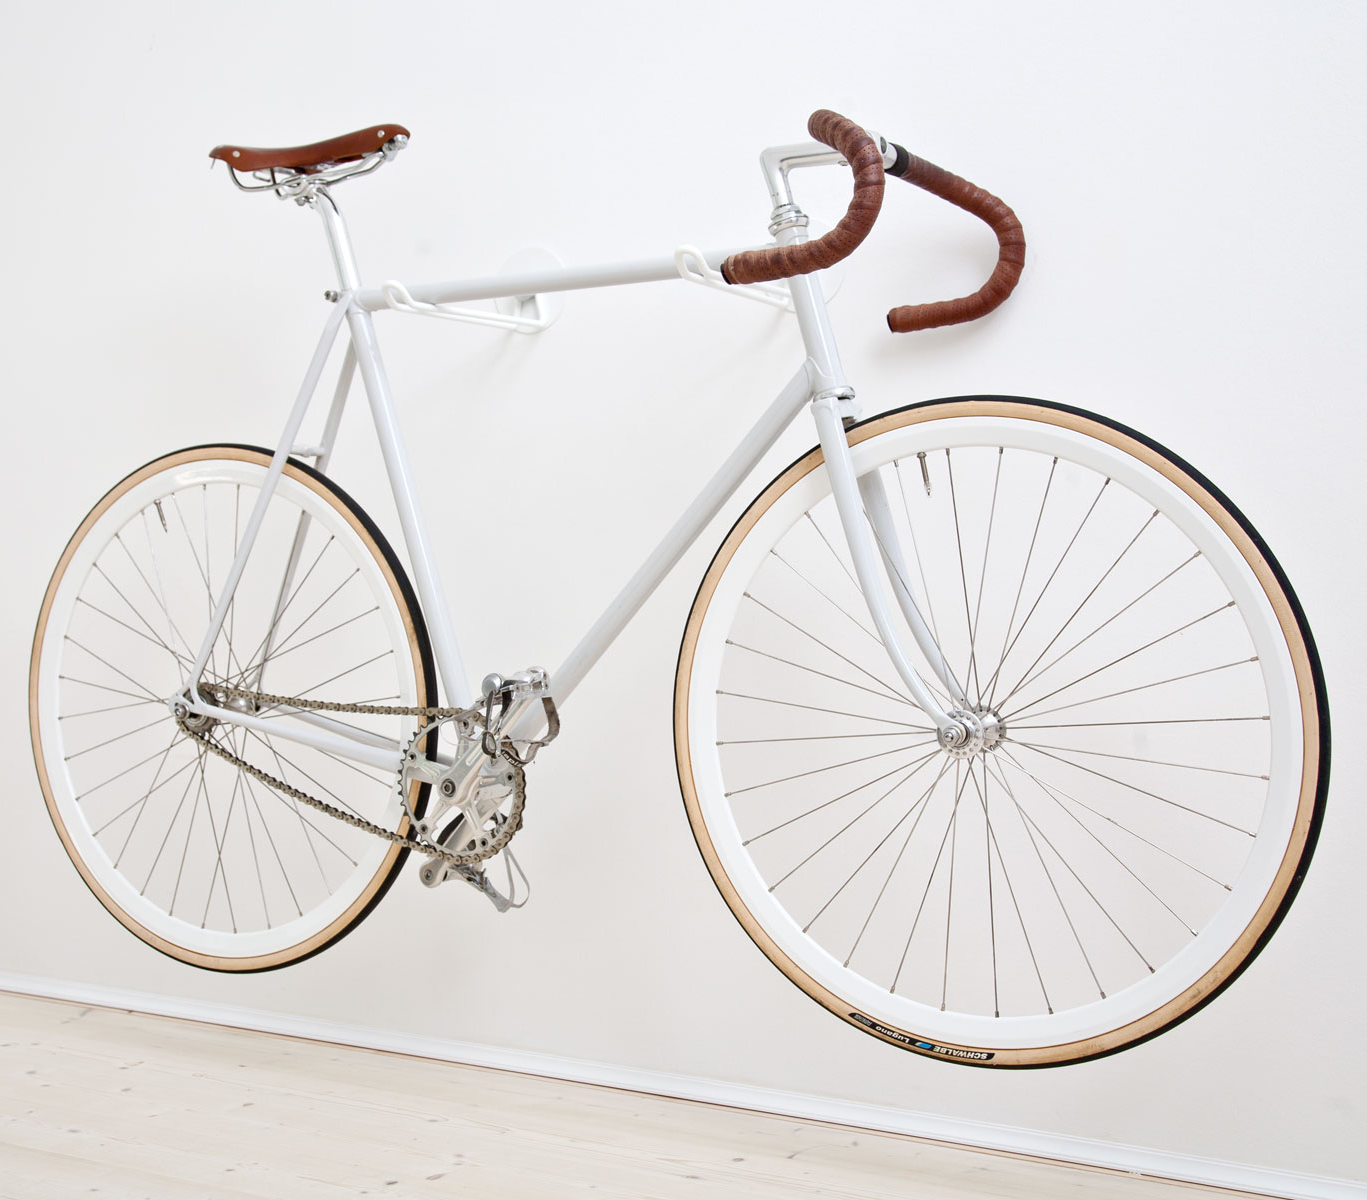 Look jeremy s bicycle rack apartment therapy - Fahrrad Wandhalterung Bike Hooks Urban Zweirad